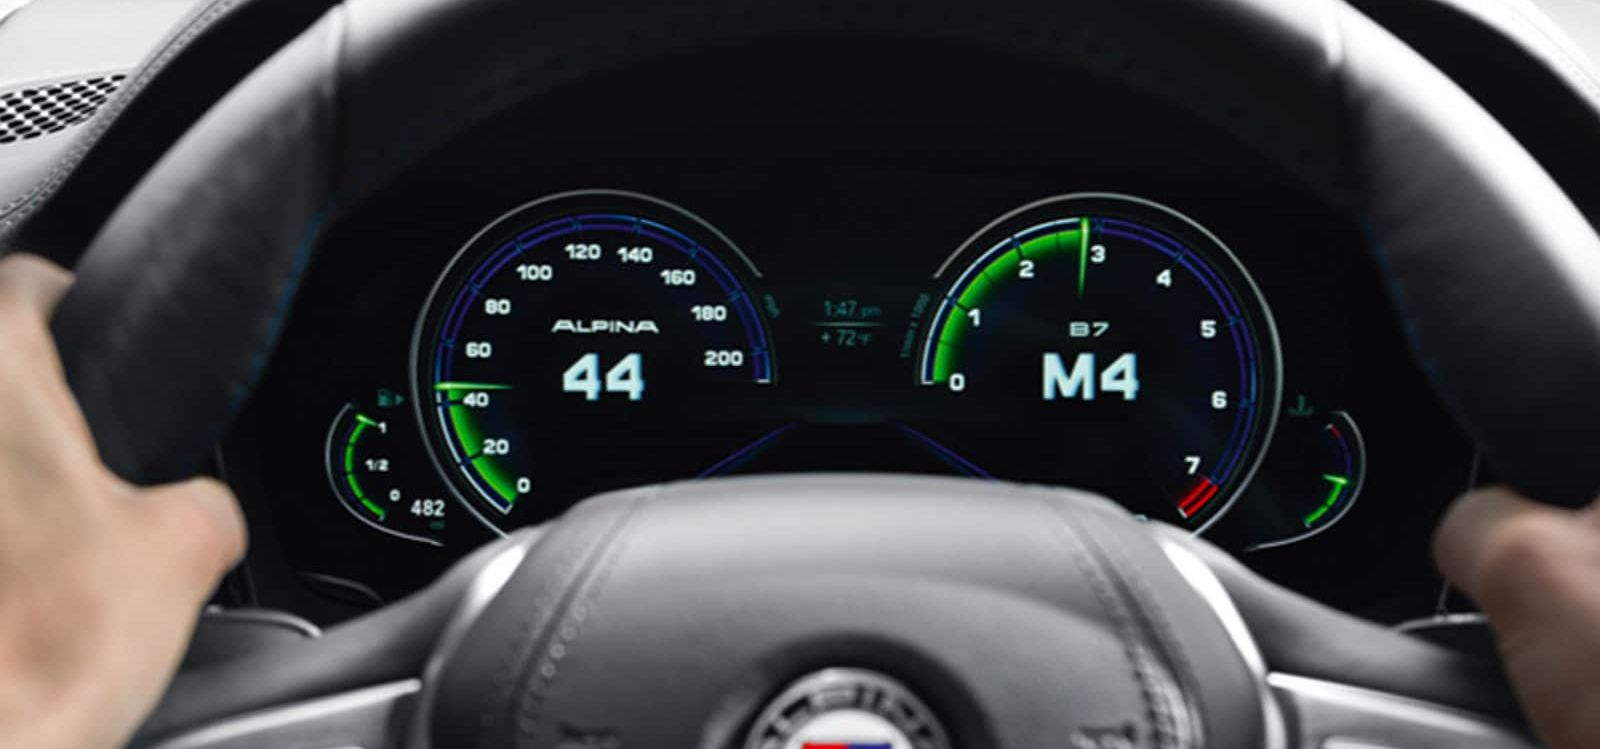 Instrument Cluster in the 2019 7 Series